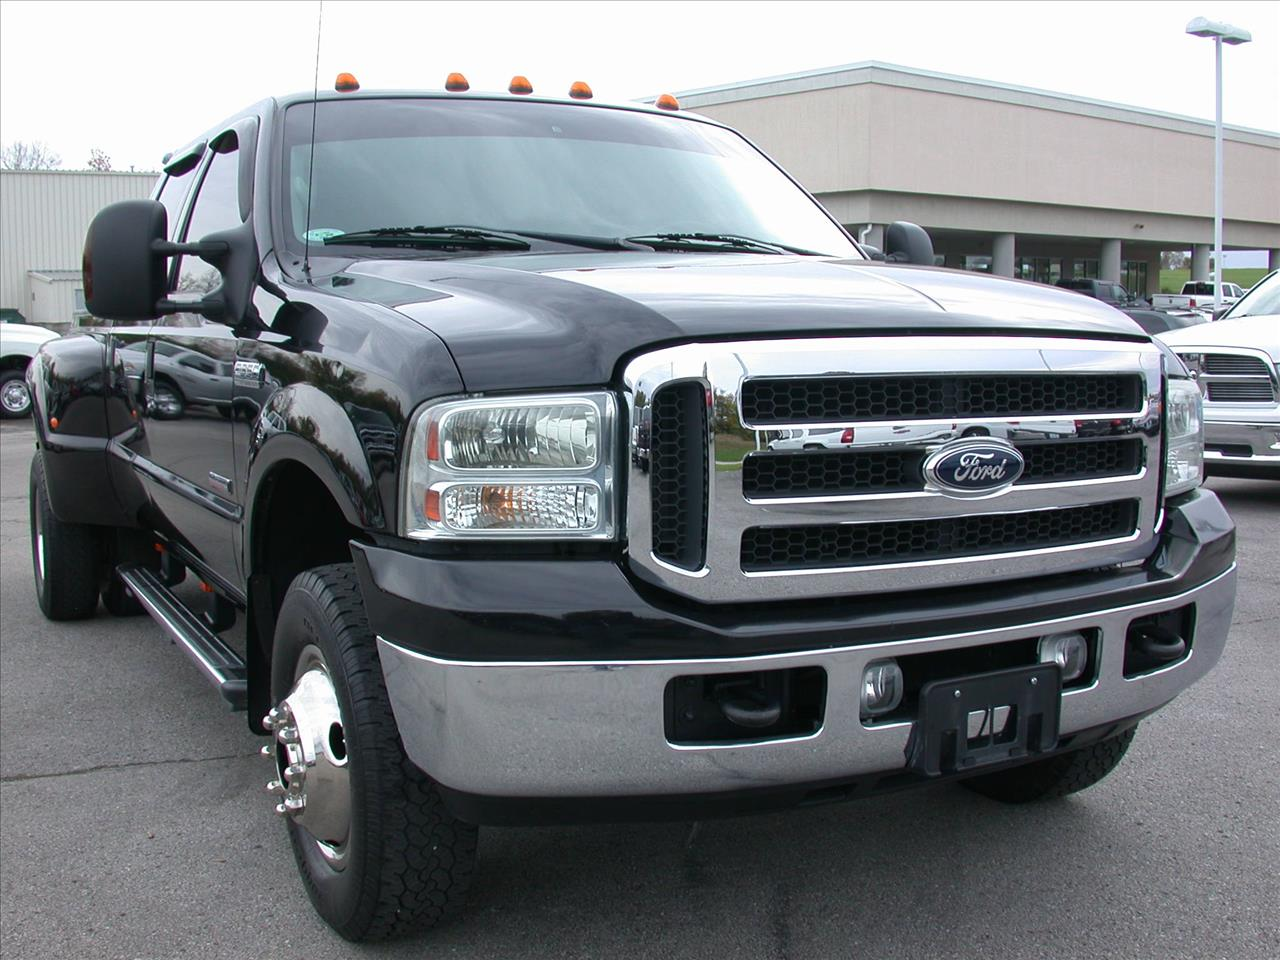 Ford Trucks For Sale In Richmond Ky Carsforsale Com